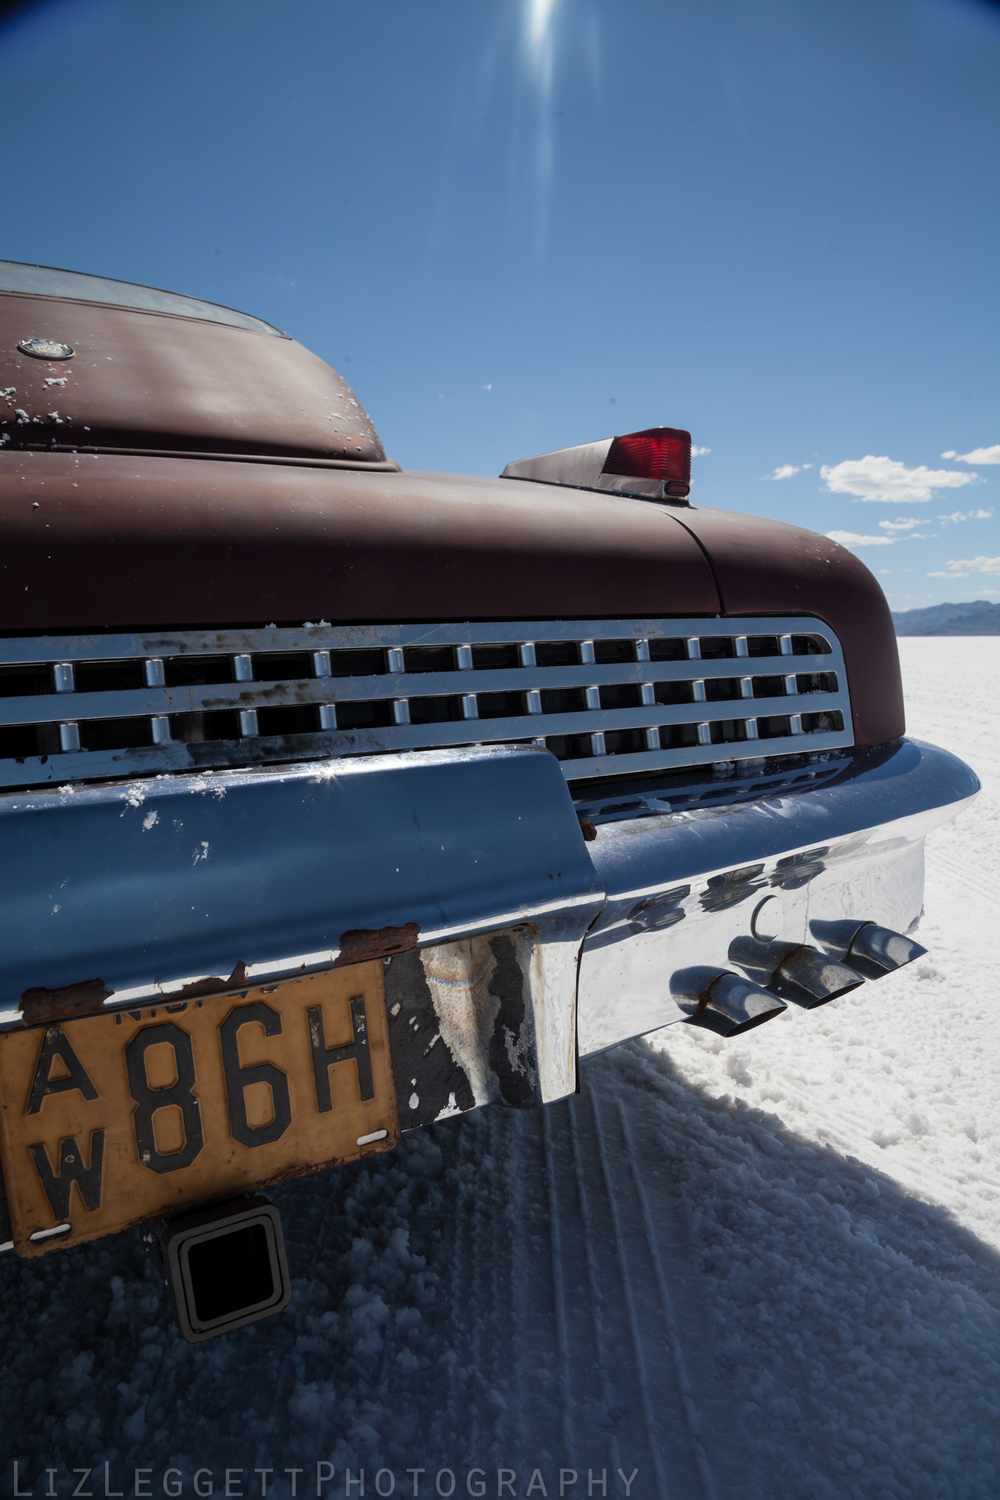 liz_leggett_photography_bonneville_day2_watermarked-6.jpg